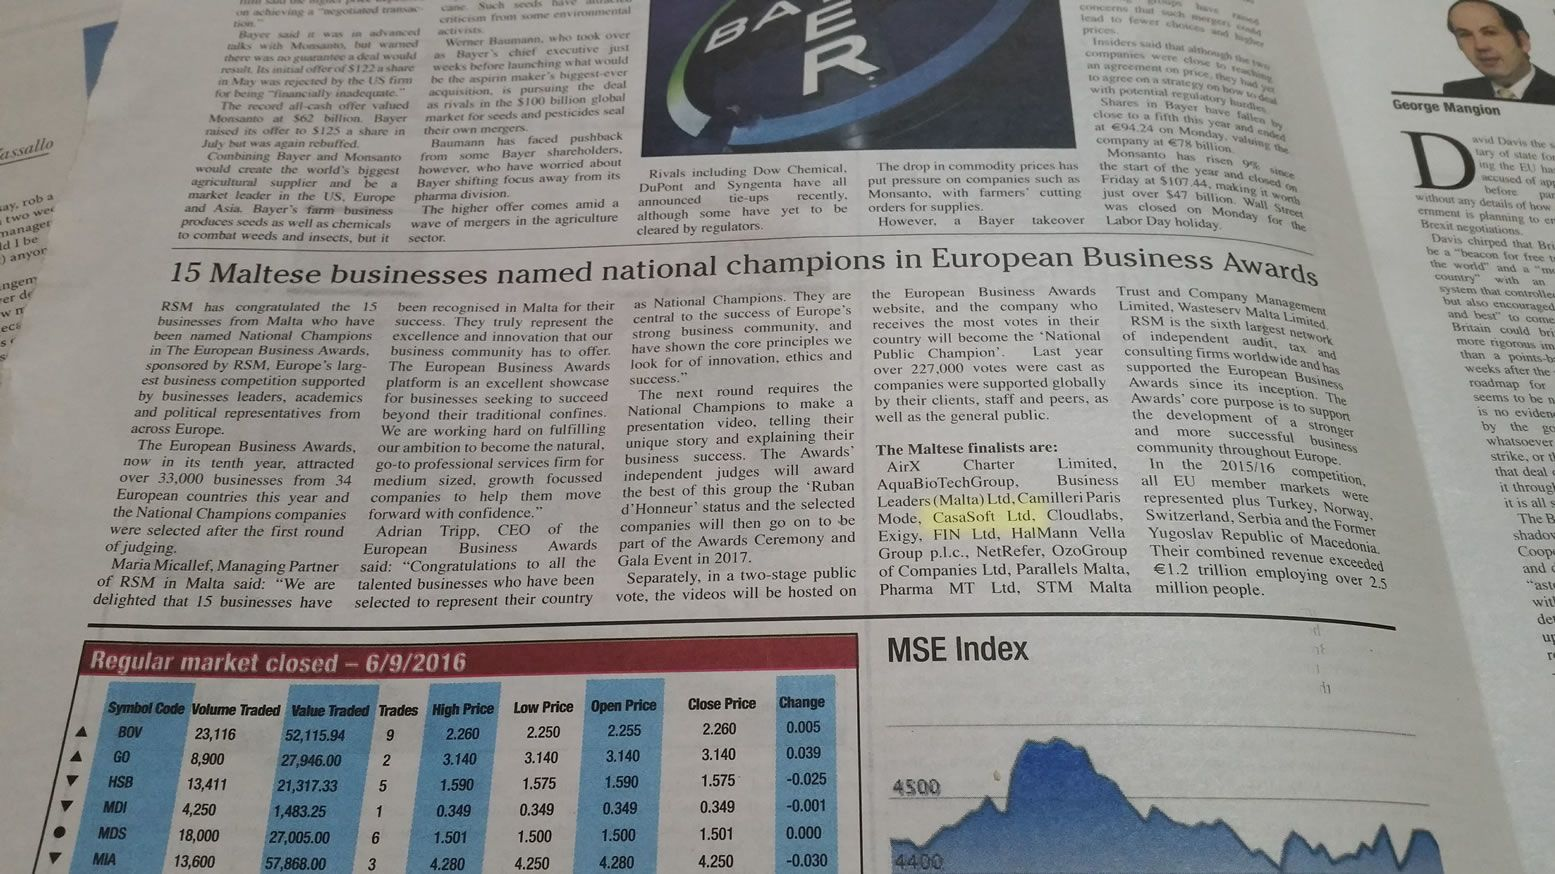 European Business Awards 2016/17 National Champions announcement article as featured on local newspaper, Malta Today